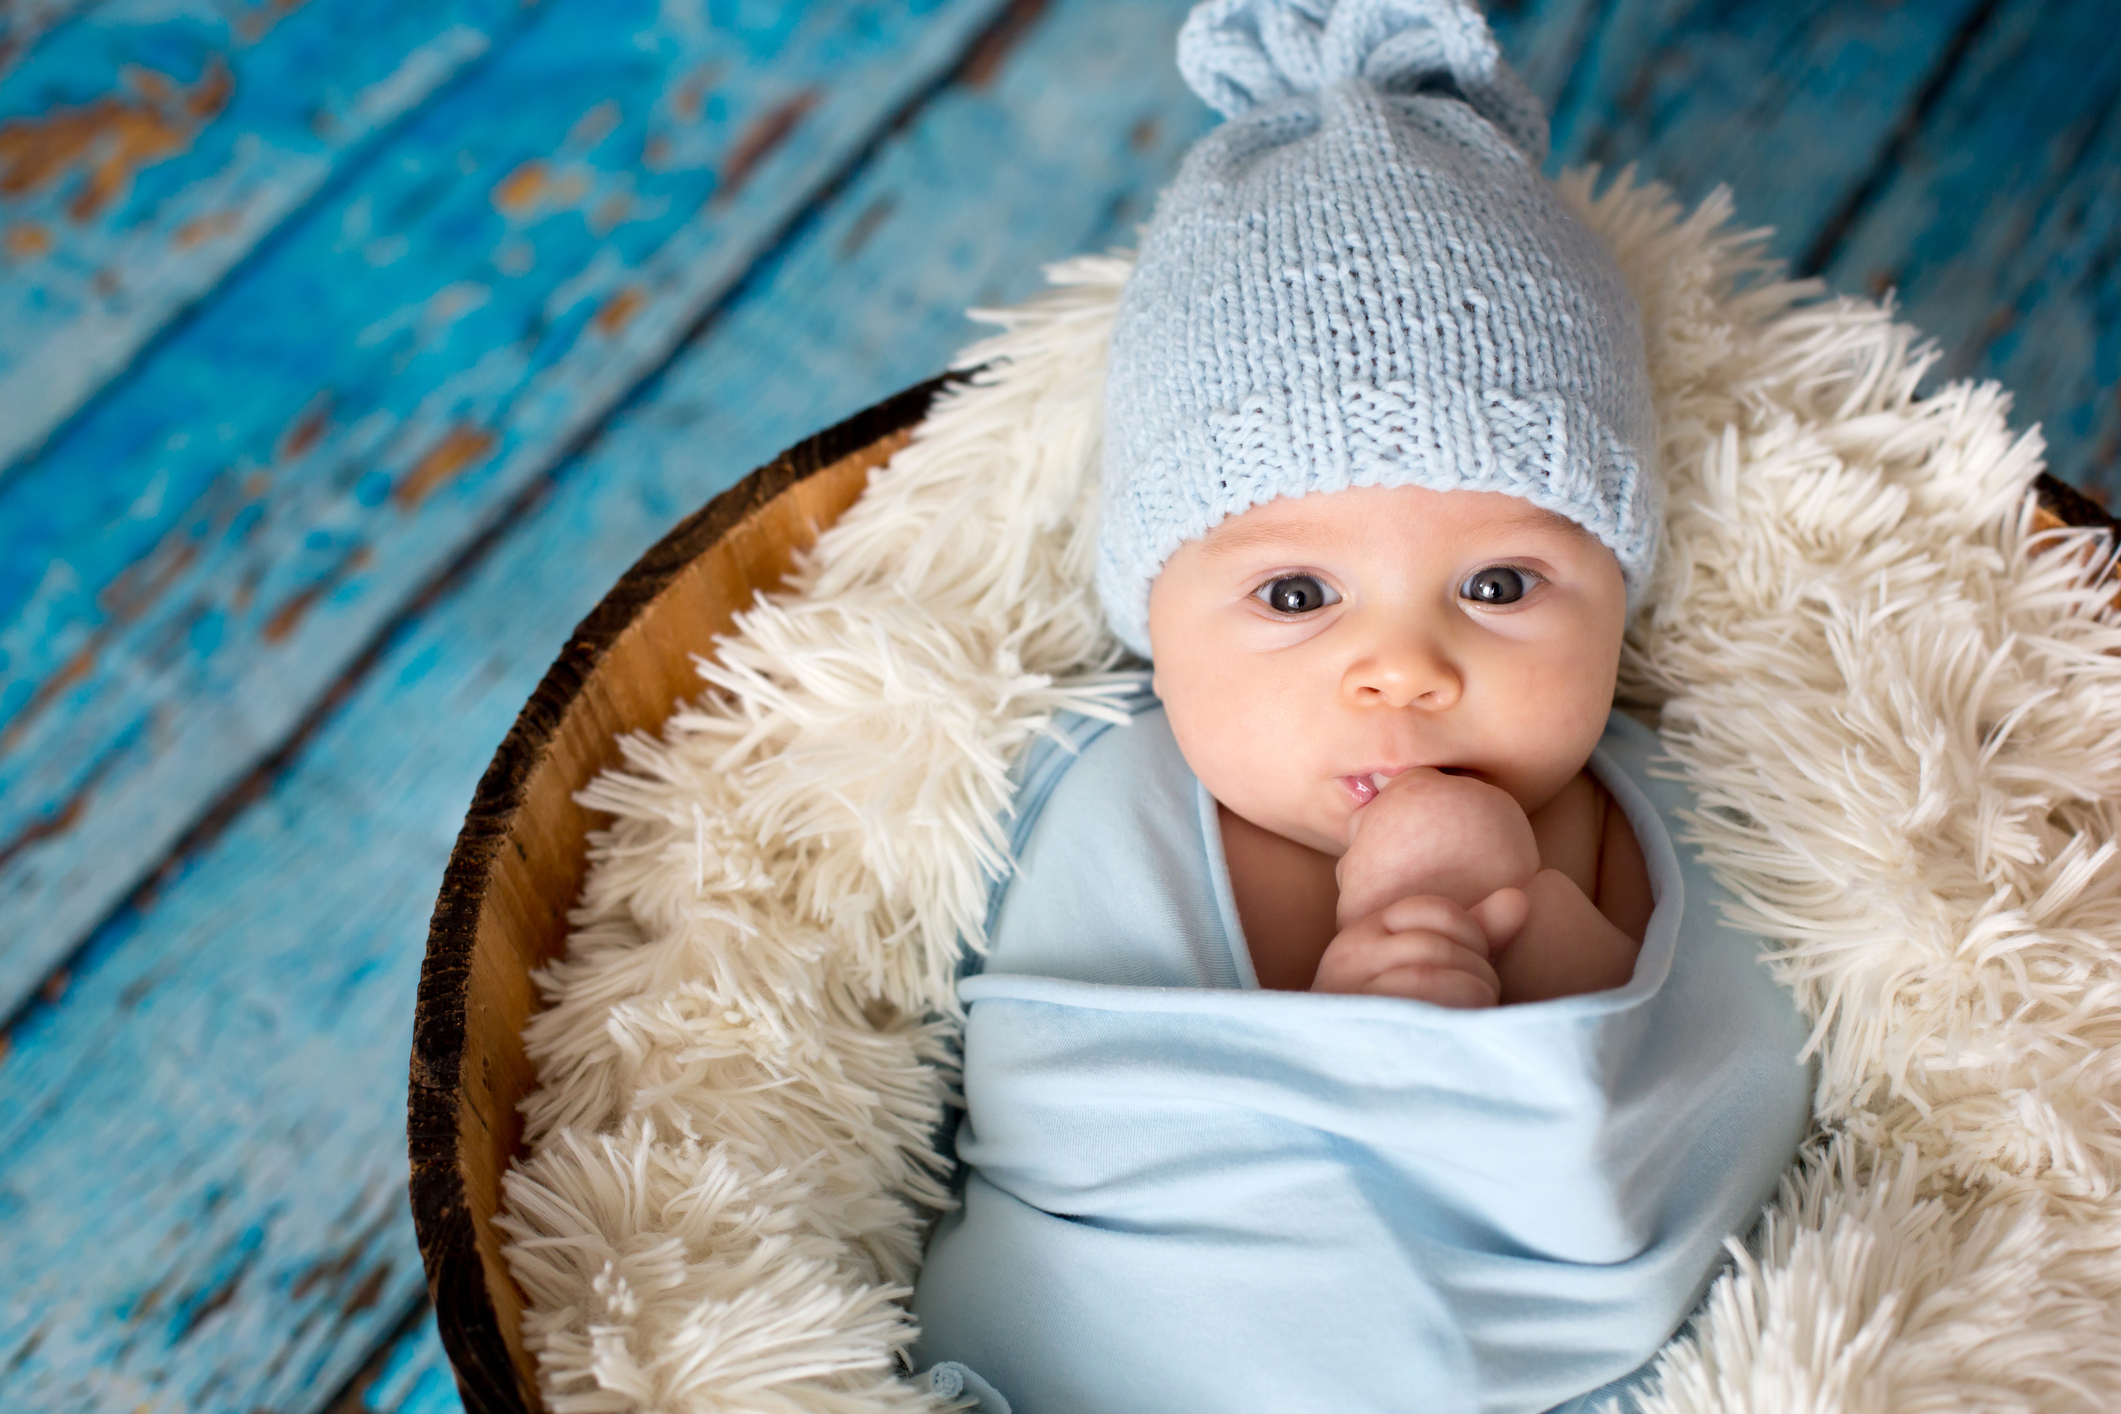 A baby swaddled in a blue blanket and hat.